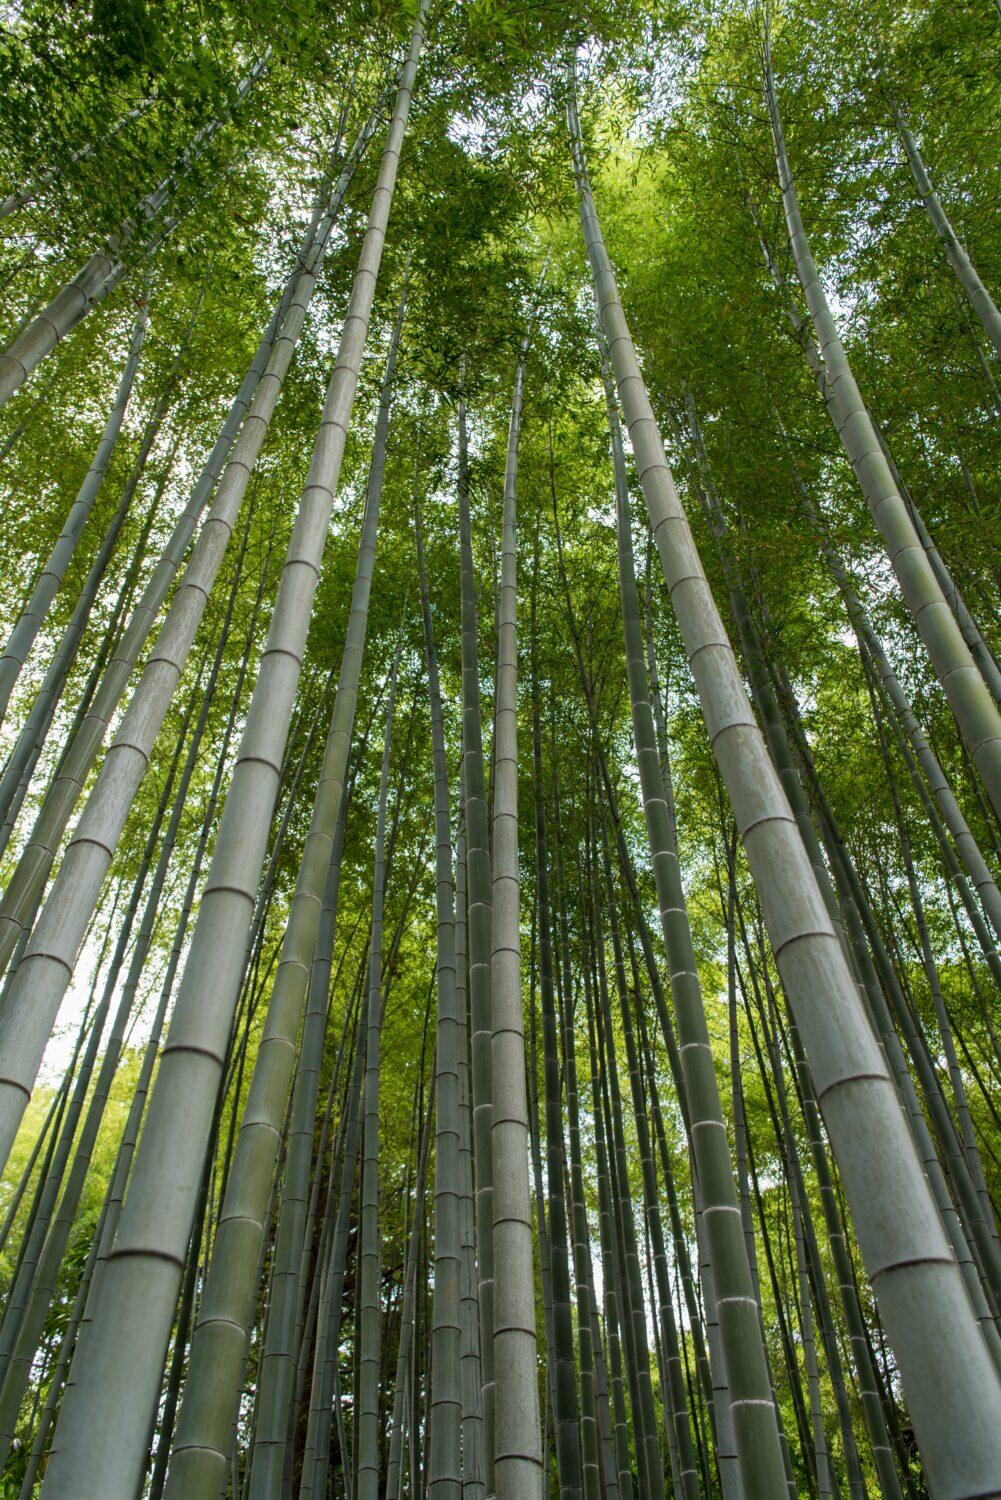 tallest bamboo for sale